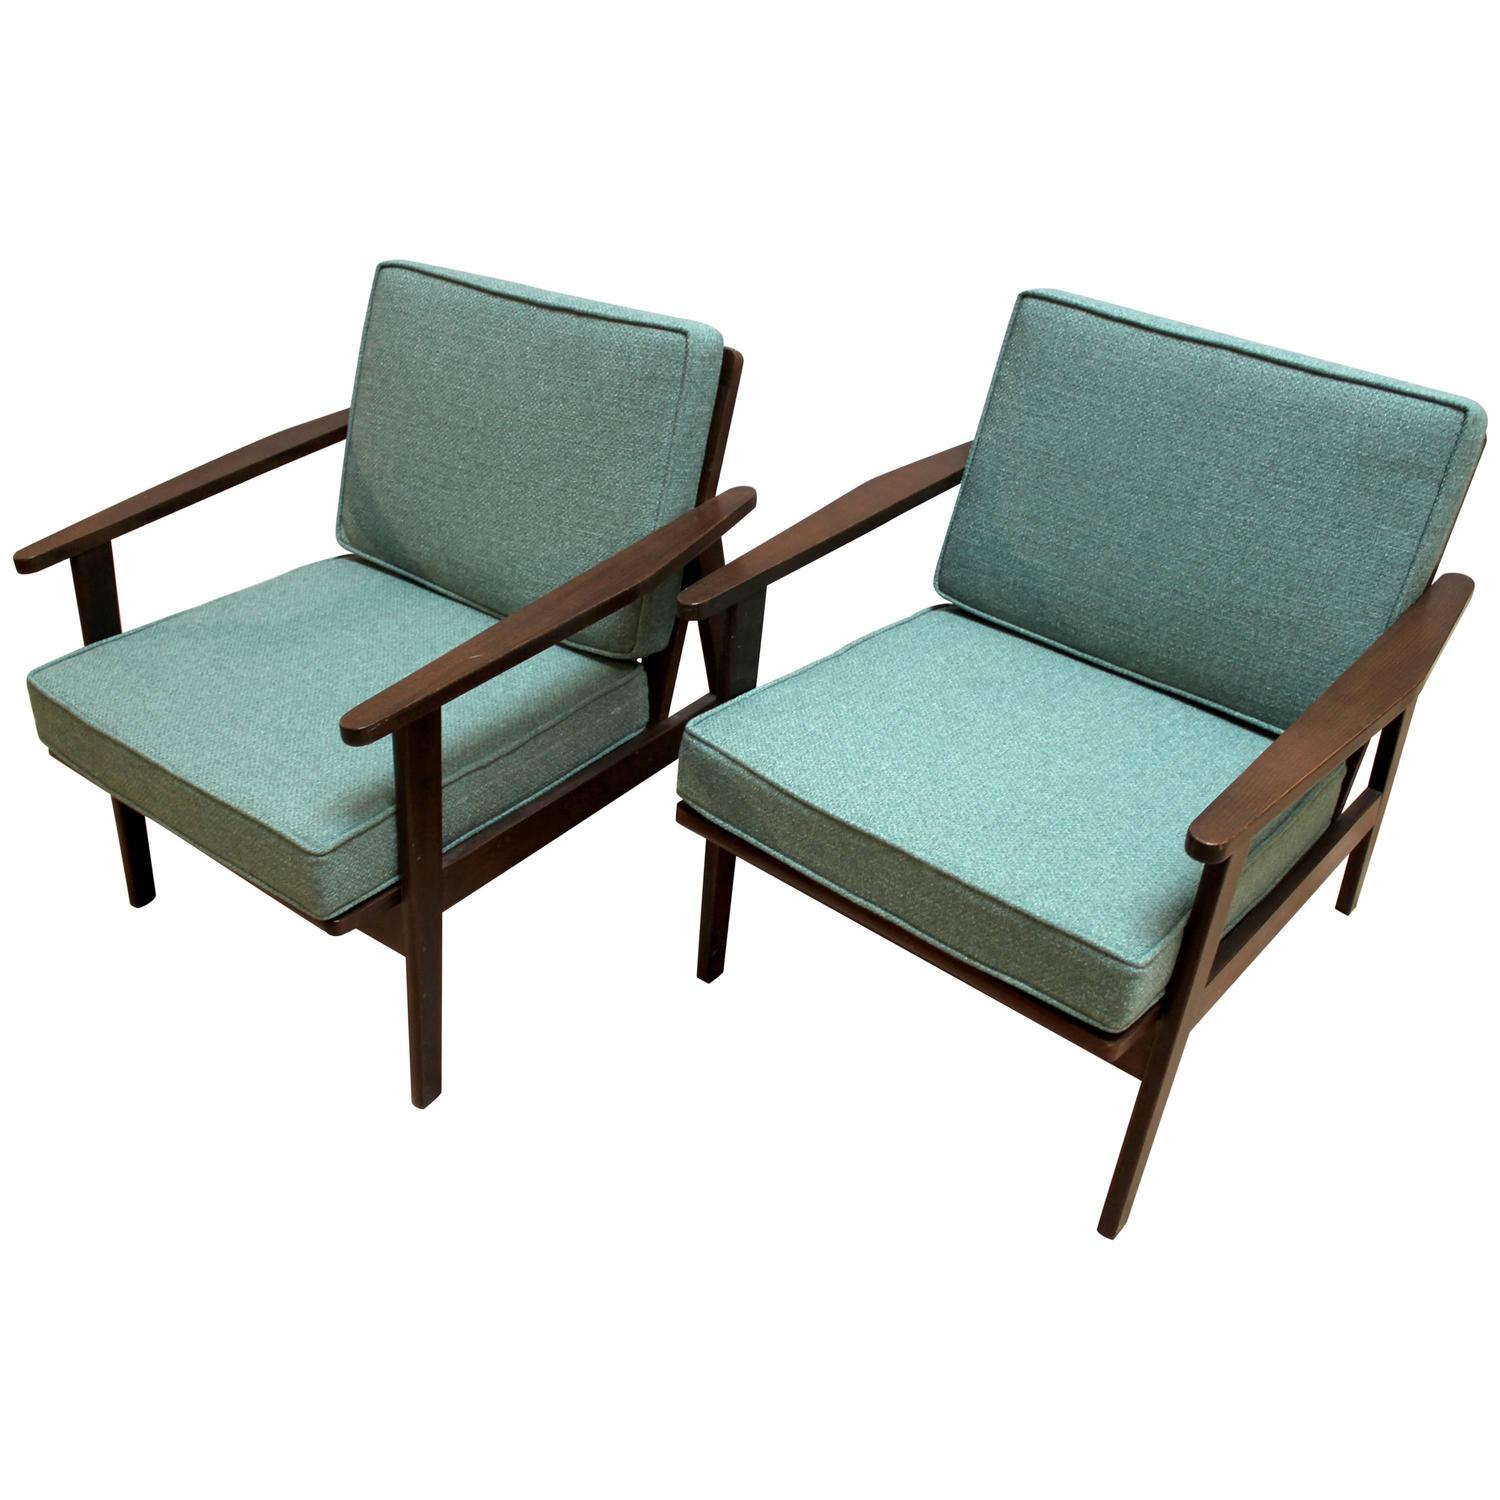 Pair of 1950s Japanese Mid Century Modern Upholstered Lounge